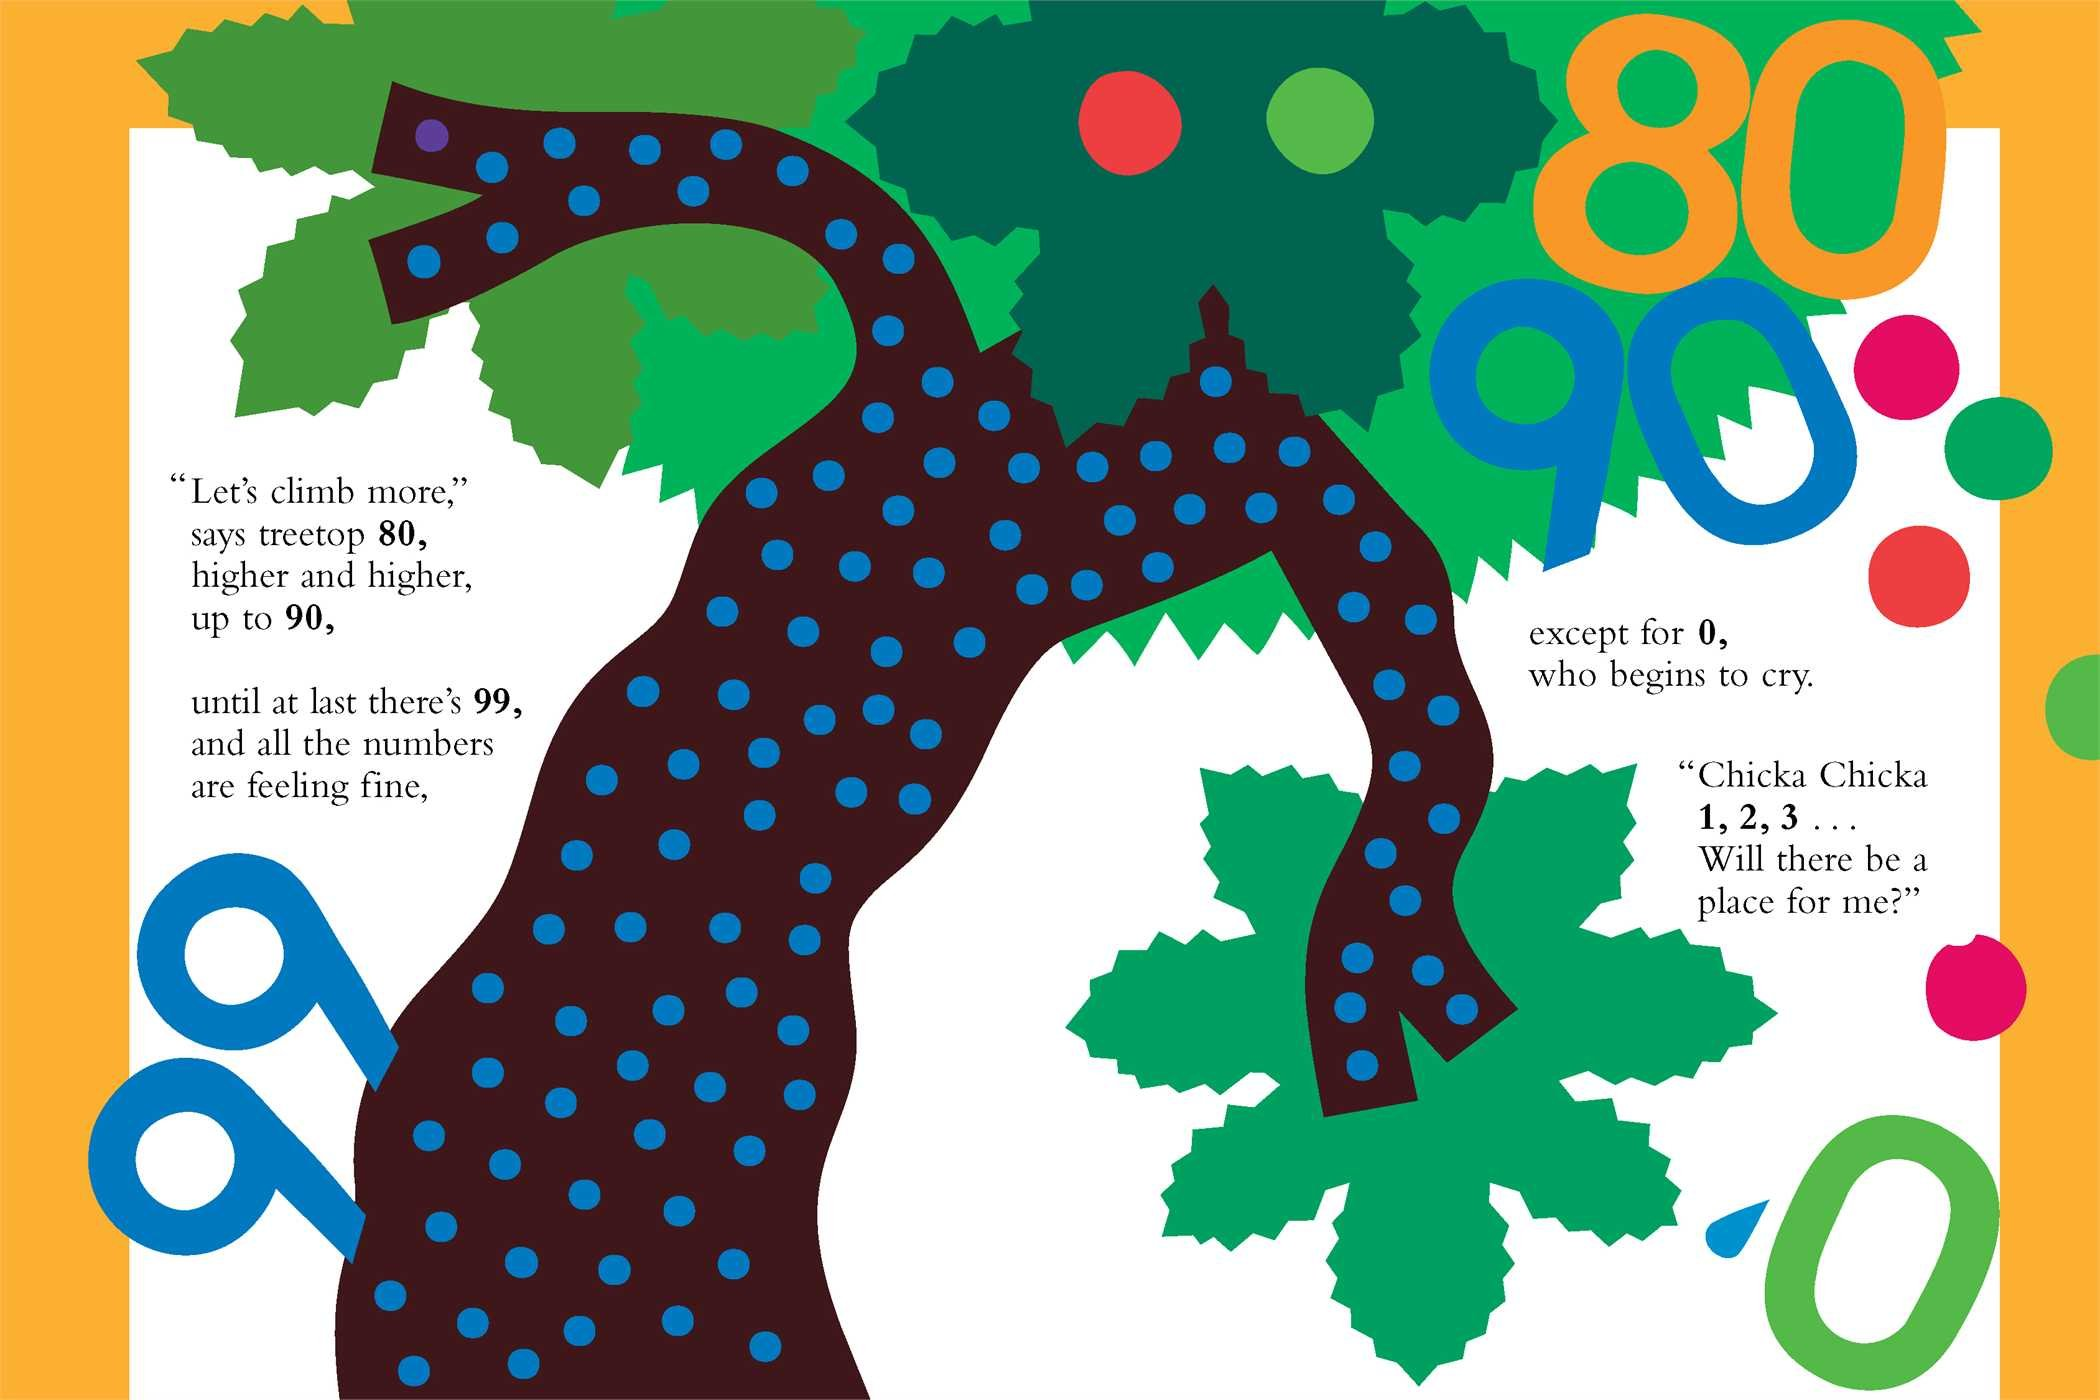 Chicka Chicka 123 Fun Kids Book For Teaching Numbers